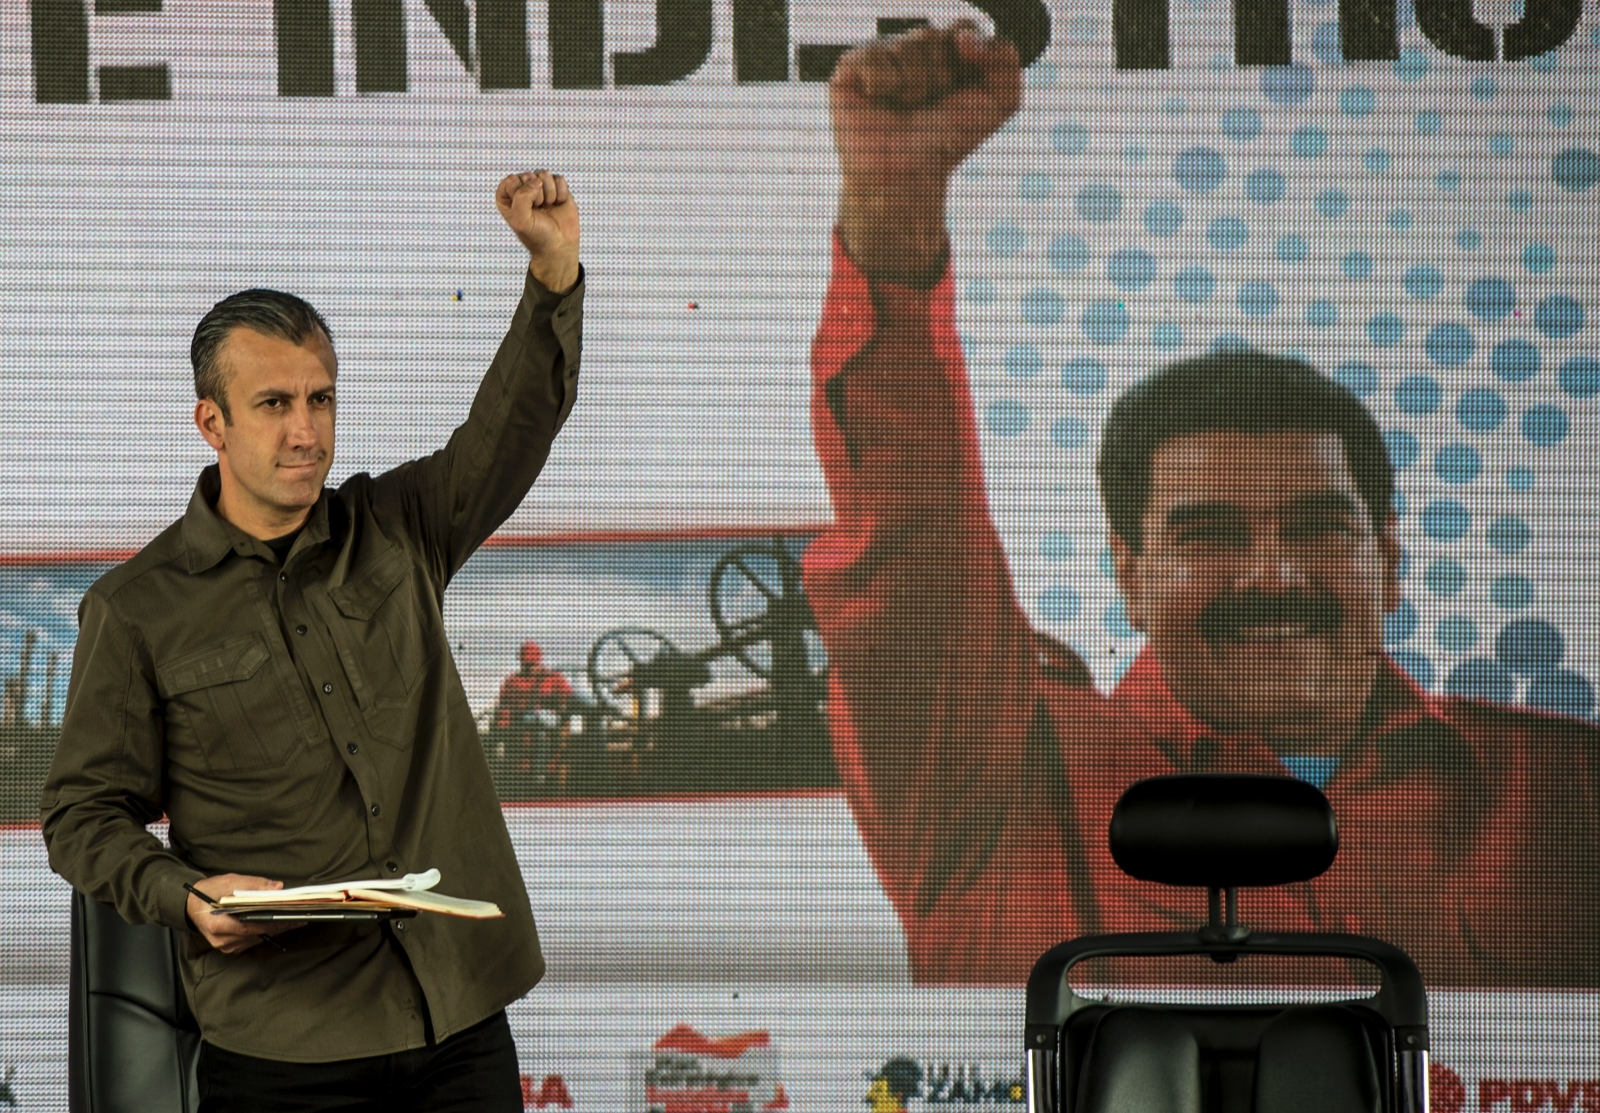 Tarej El Aissami at Caracas rally